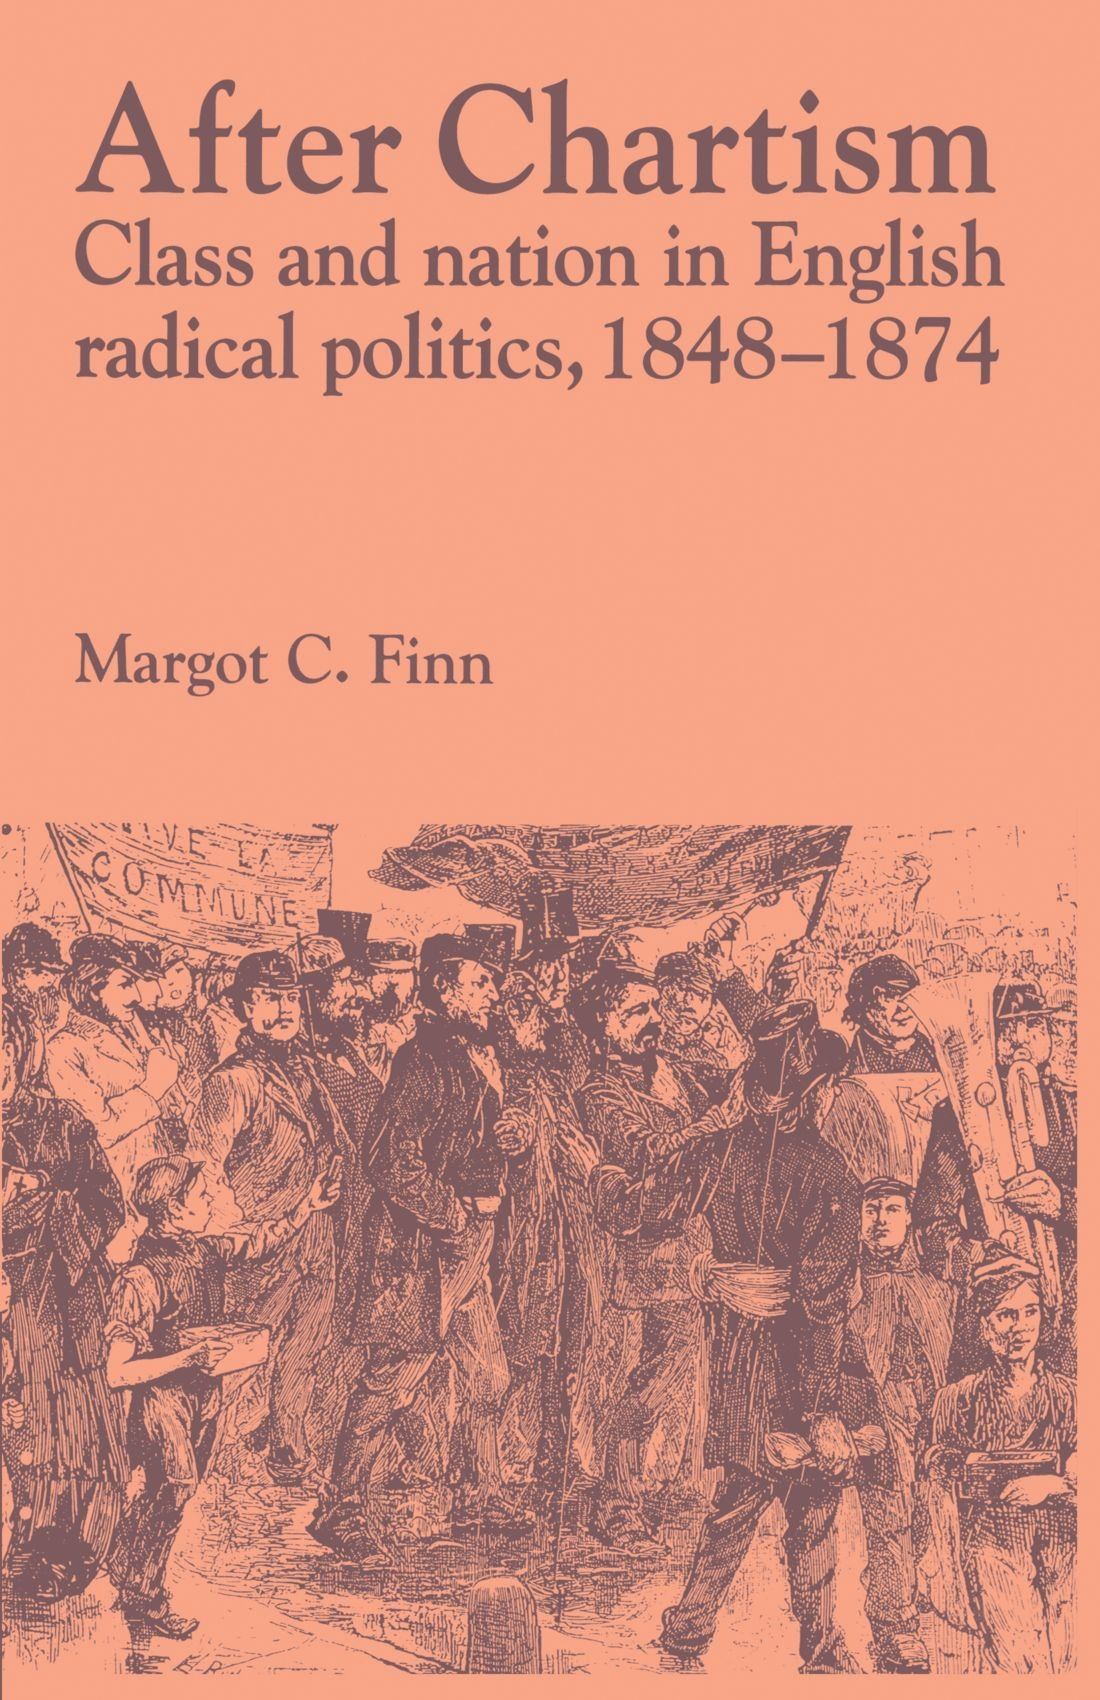 Download After Chartism: Class and Nation in English Radical Politics 1848-1874 (Past and Present Publications) PDF